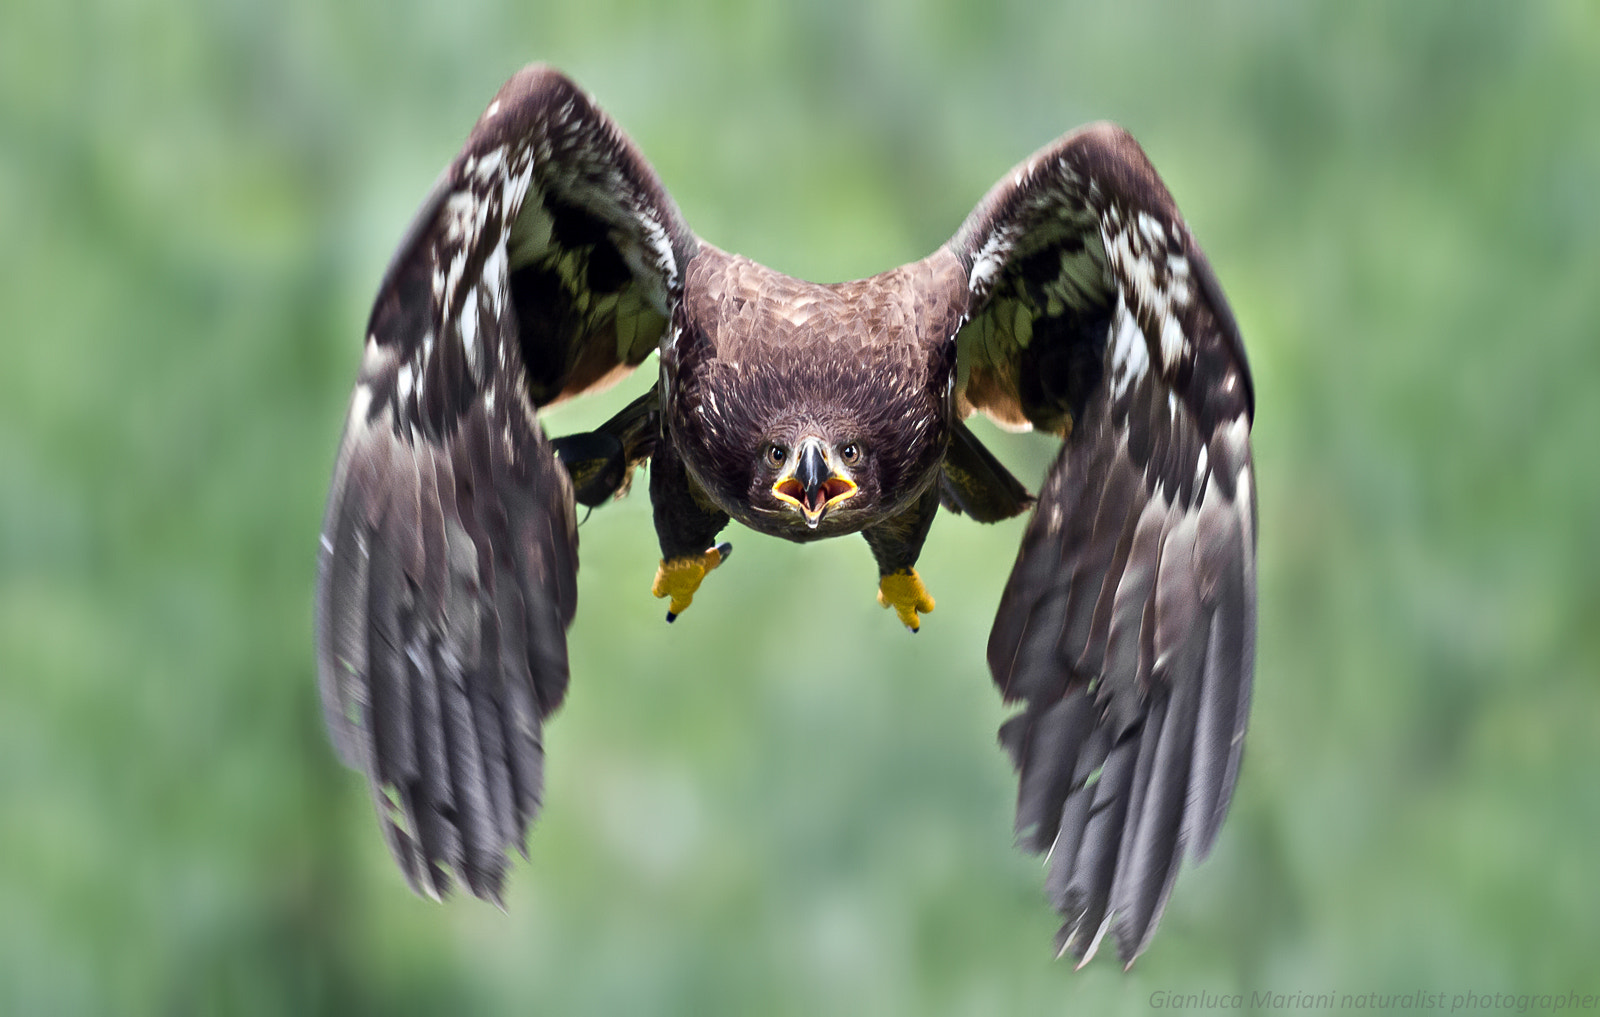 Photograph Eagle by Gianluca Mariani Nature Photographer natura 2.8 on 500px